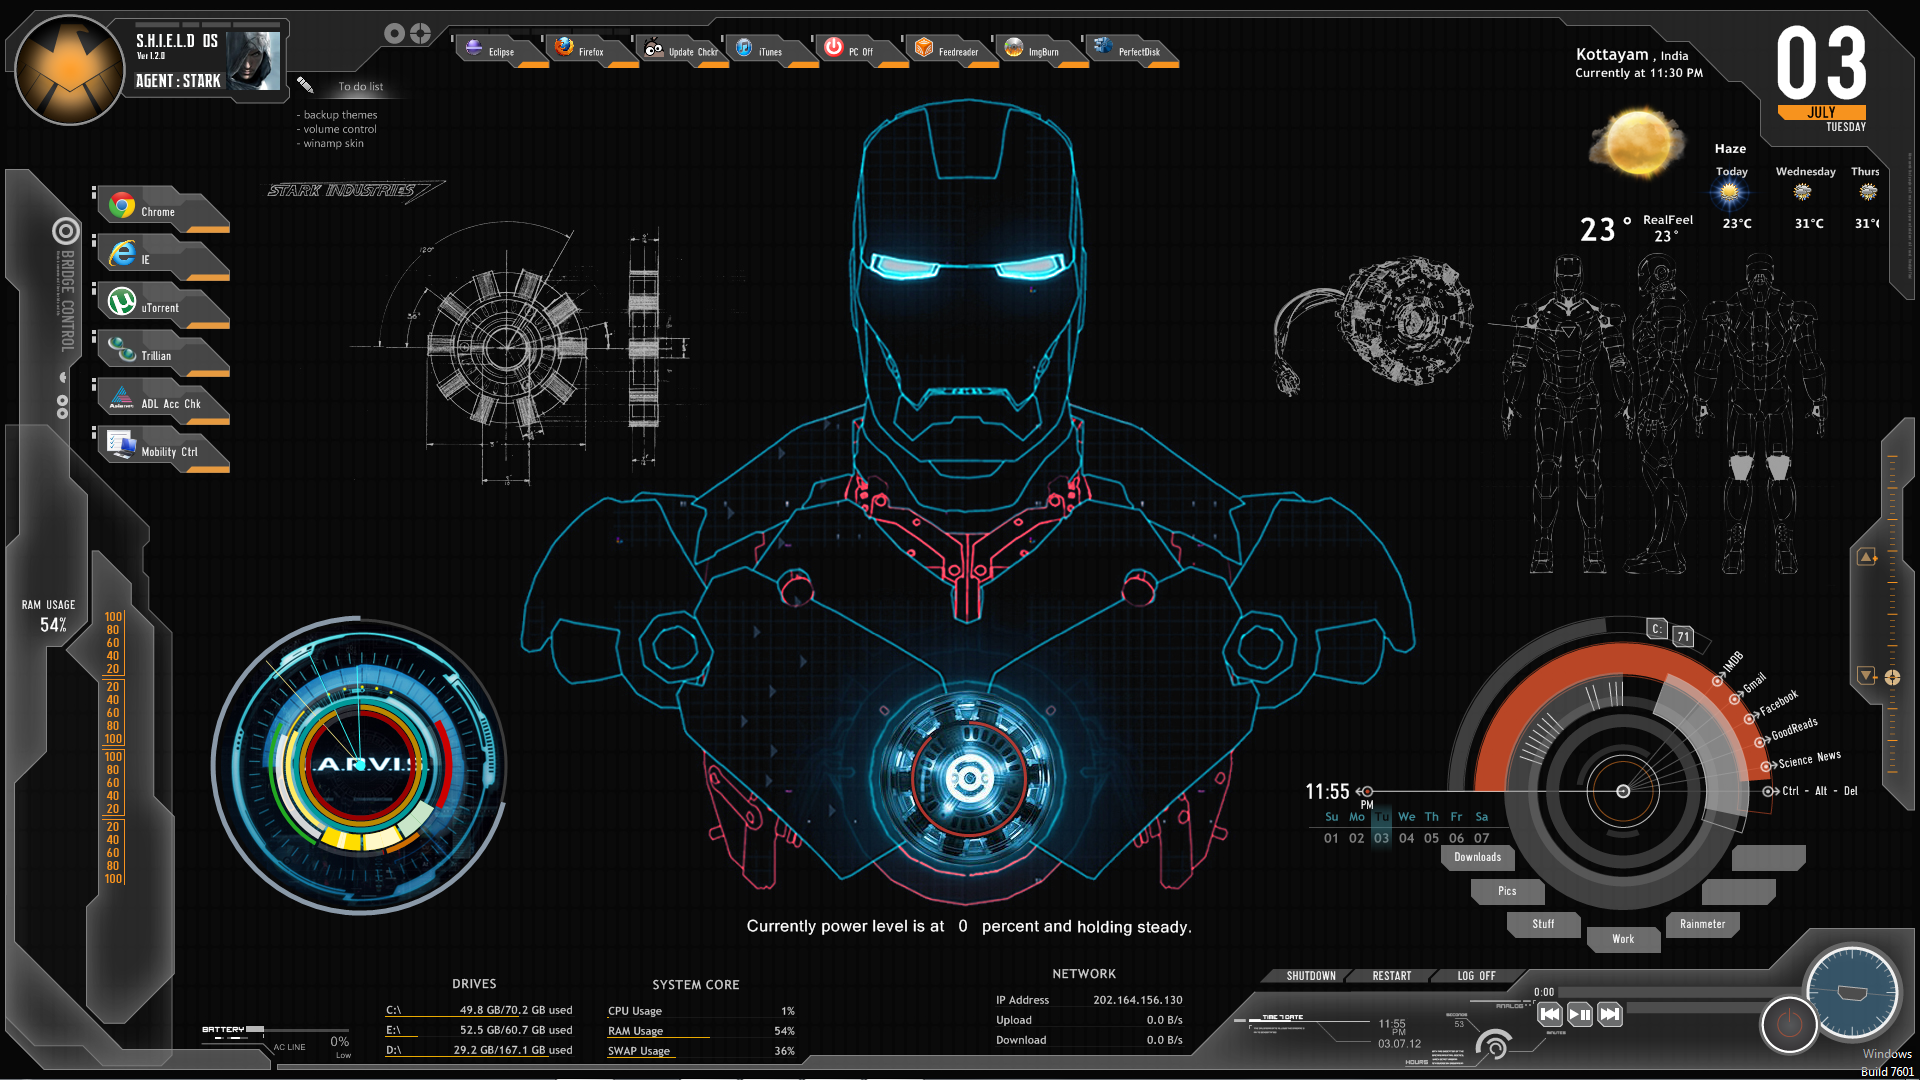 Iron Man Jarvis Theme For Windows 10 Wiring Diagrams 20022004 Ford F250 Curt T Connector Harness 55265 Shield 8 7 Rh Themeraider Com Eylo Window Download